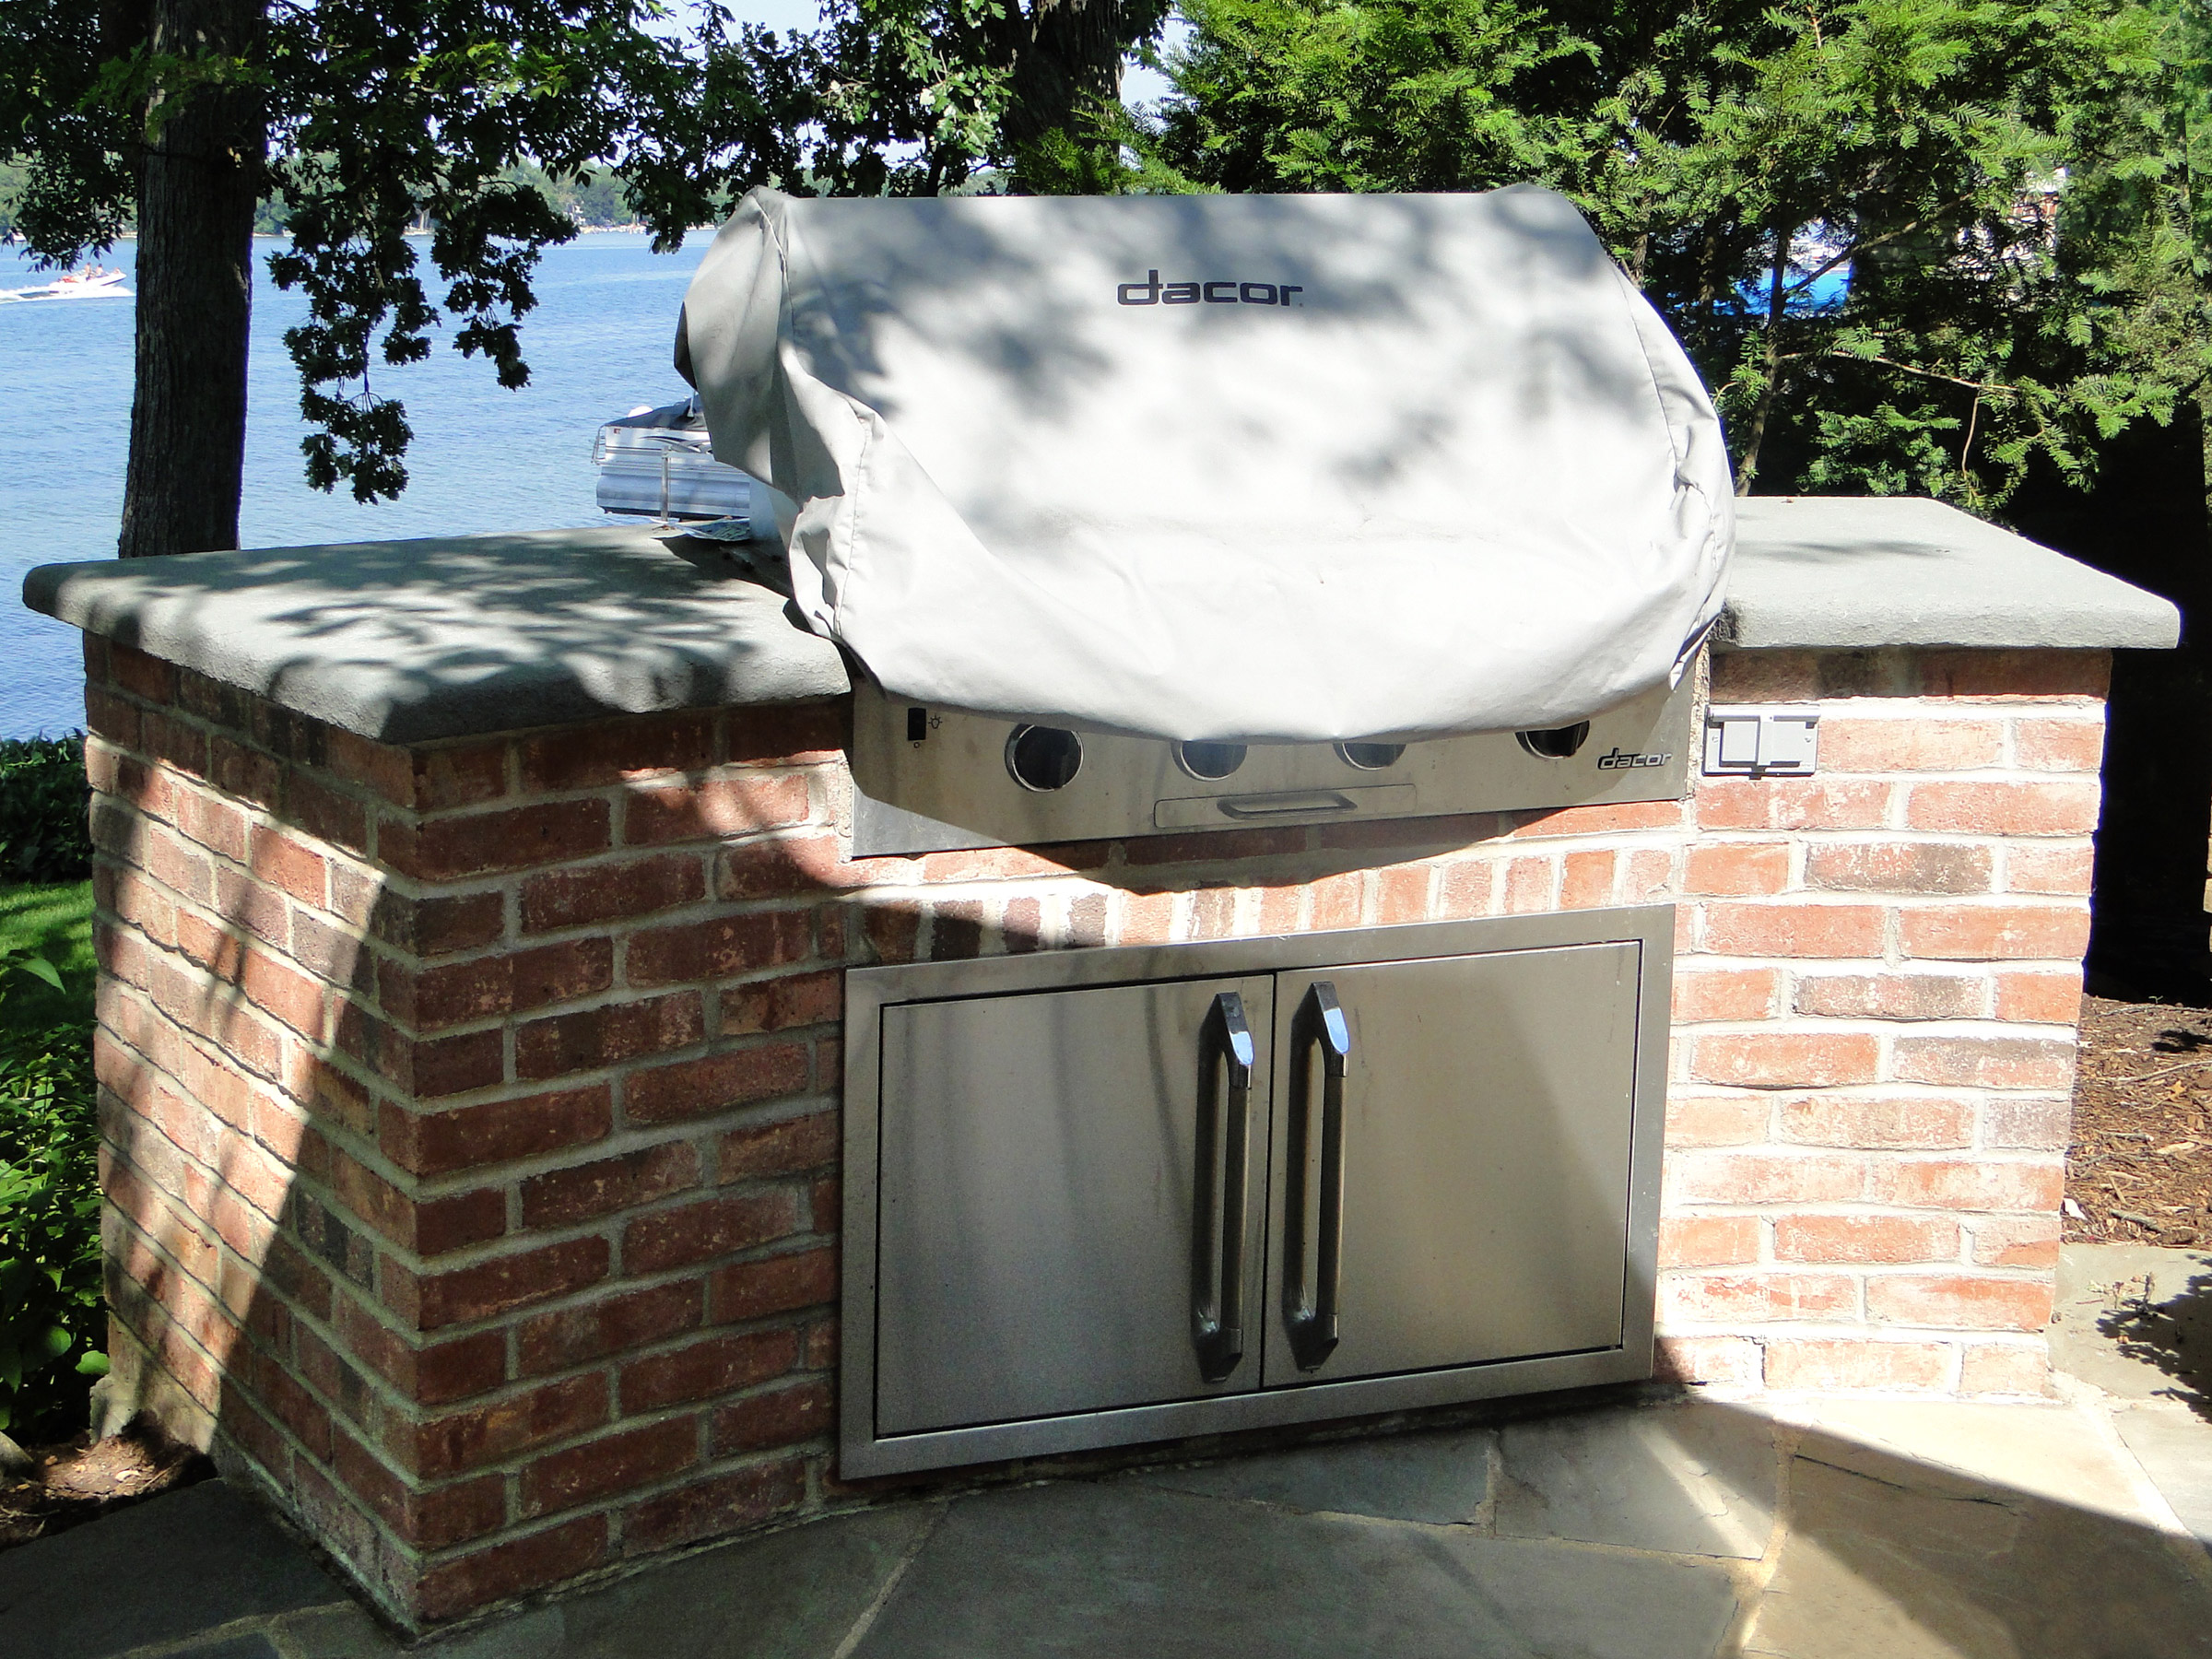 Now that's a grill! And the brick matches the house!